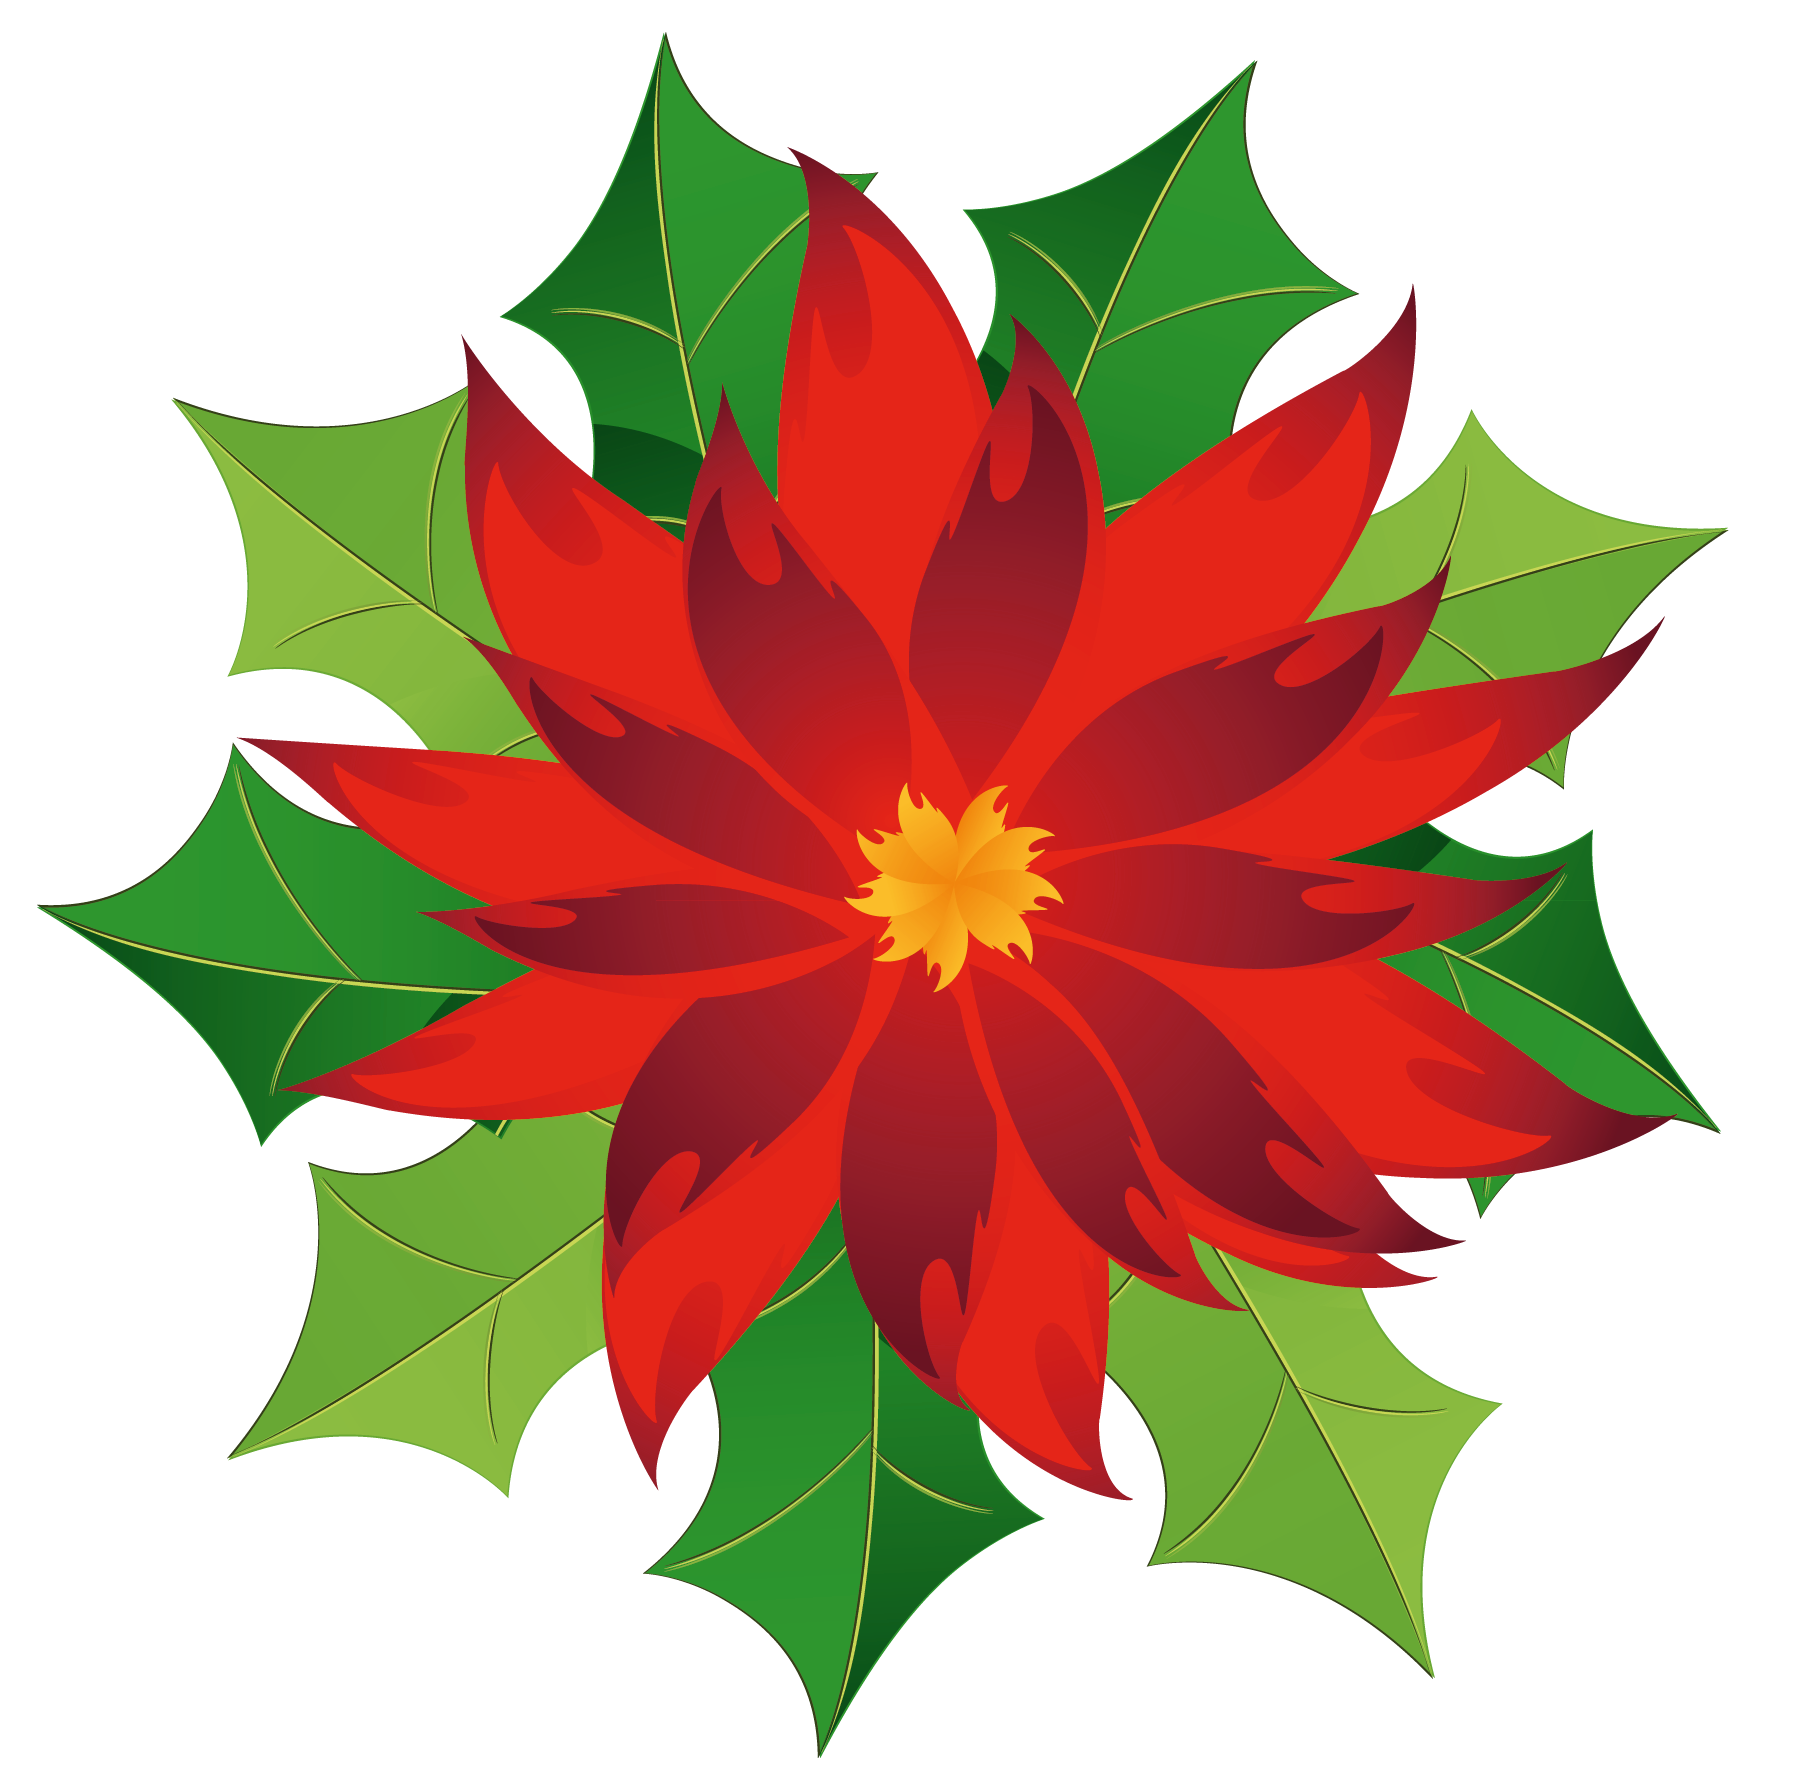 Christmas flower clipart svg royalty free download Christmas Poinsettia Clipart | Gallery Yopriceville - High-Quality ... svg royalty free download